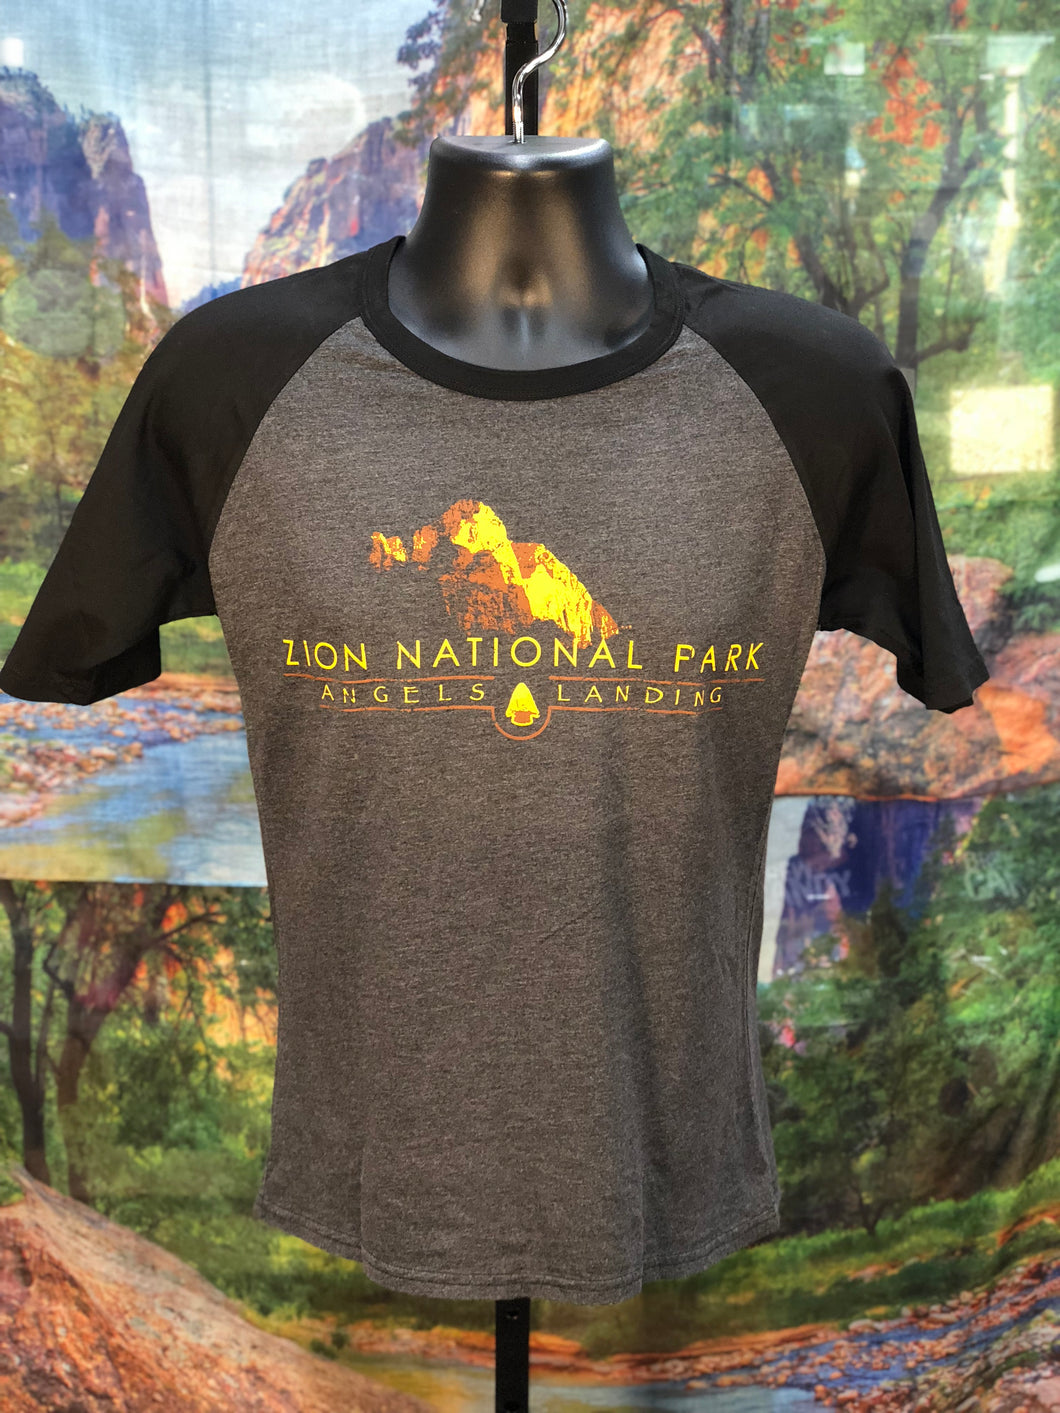 ZNP Angels Landing T-Shirt